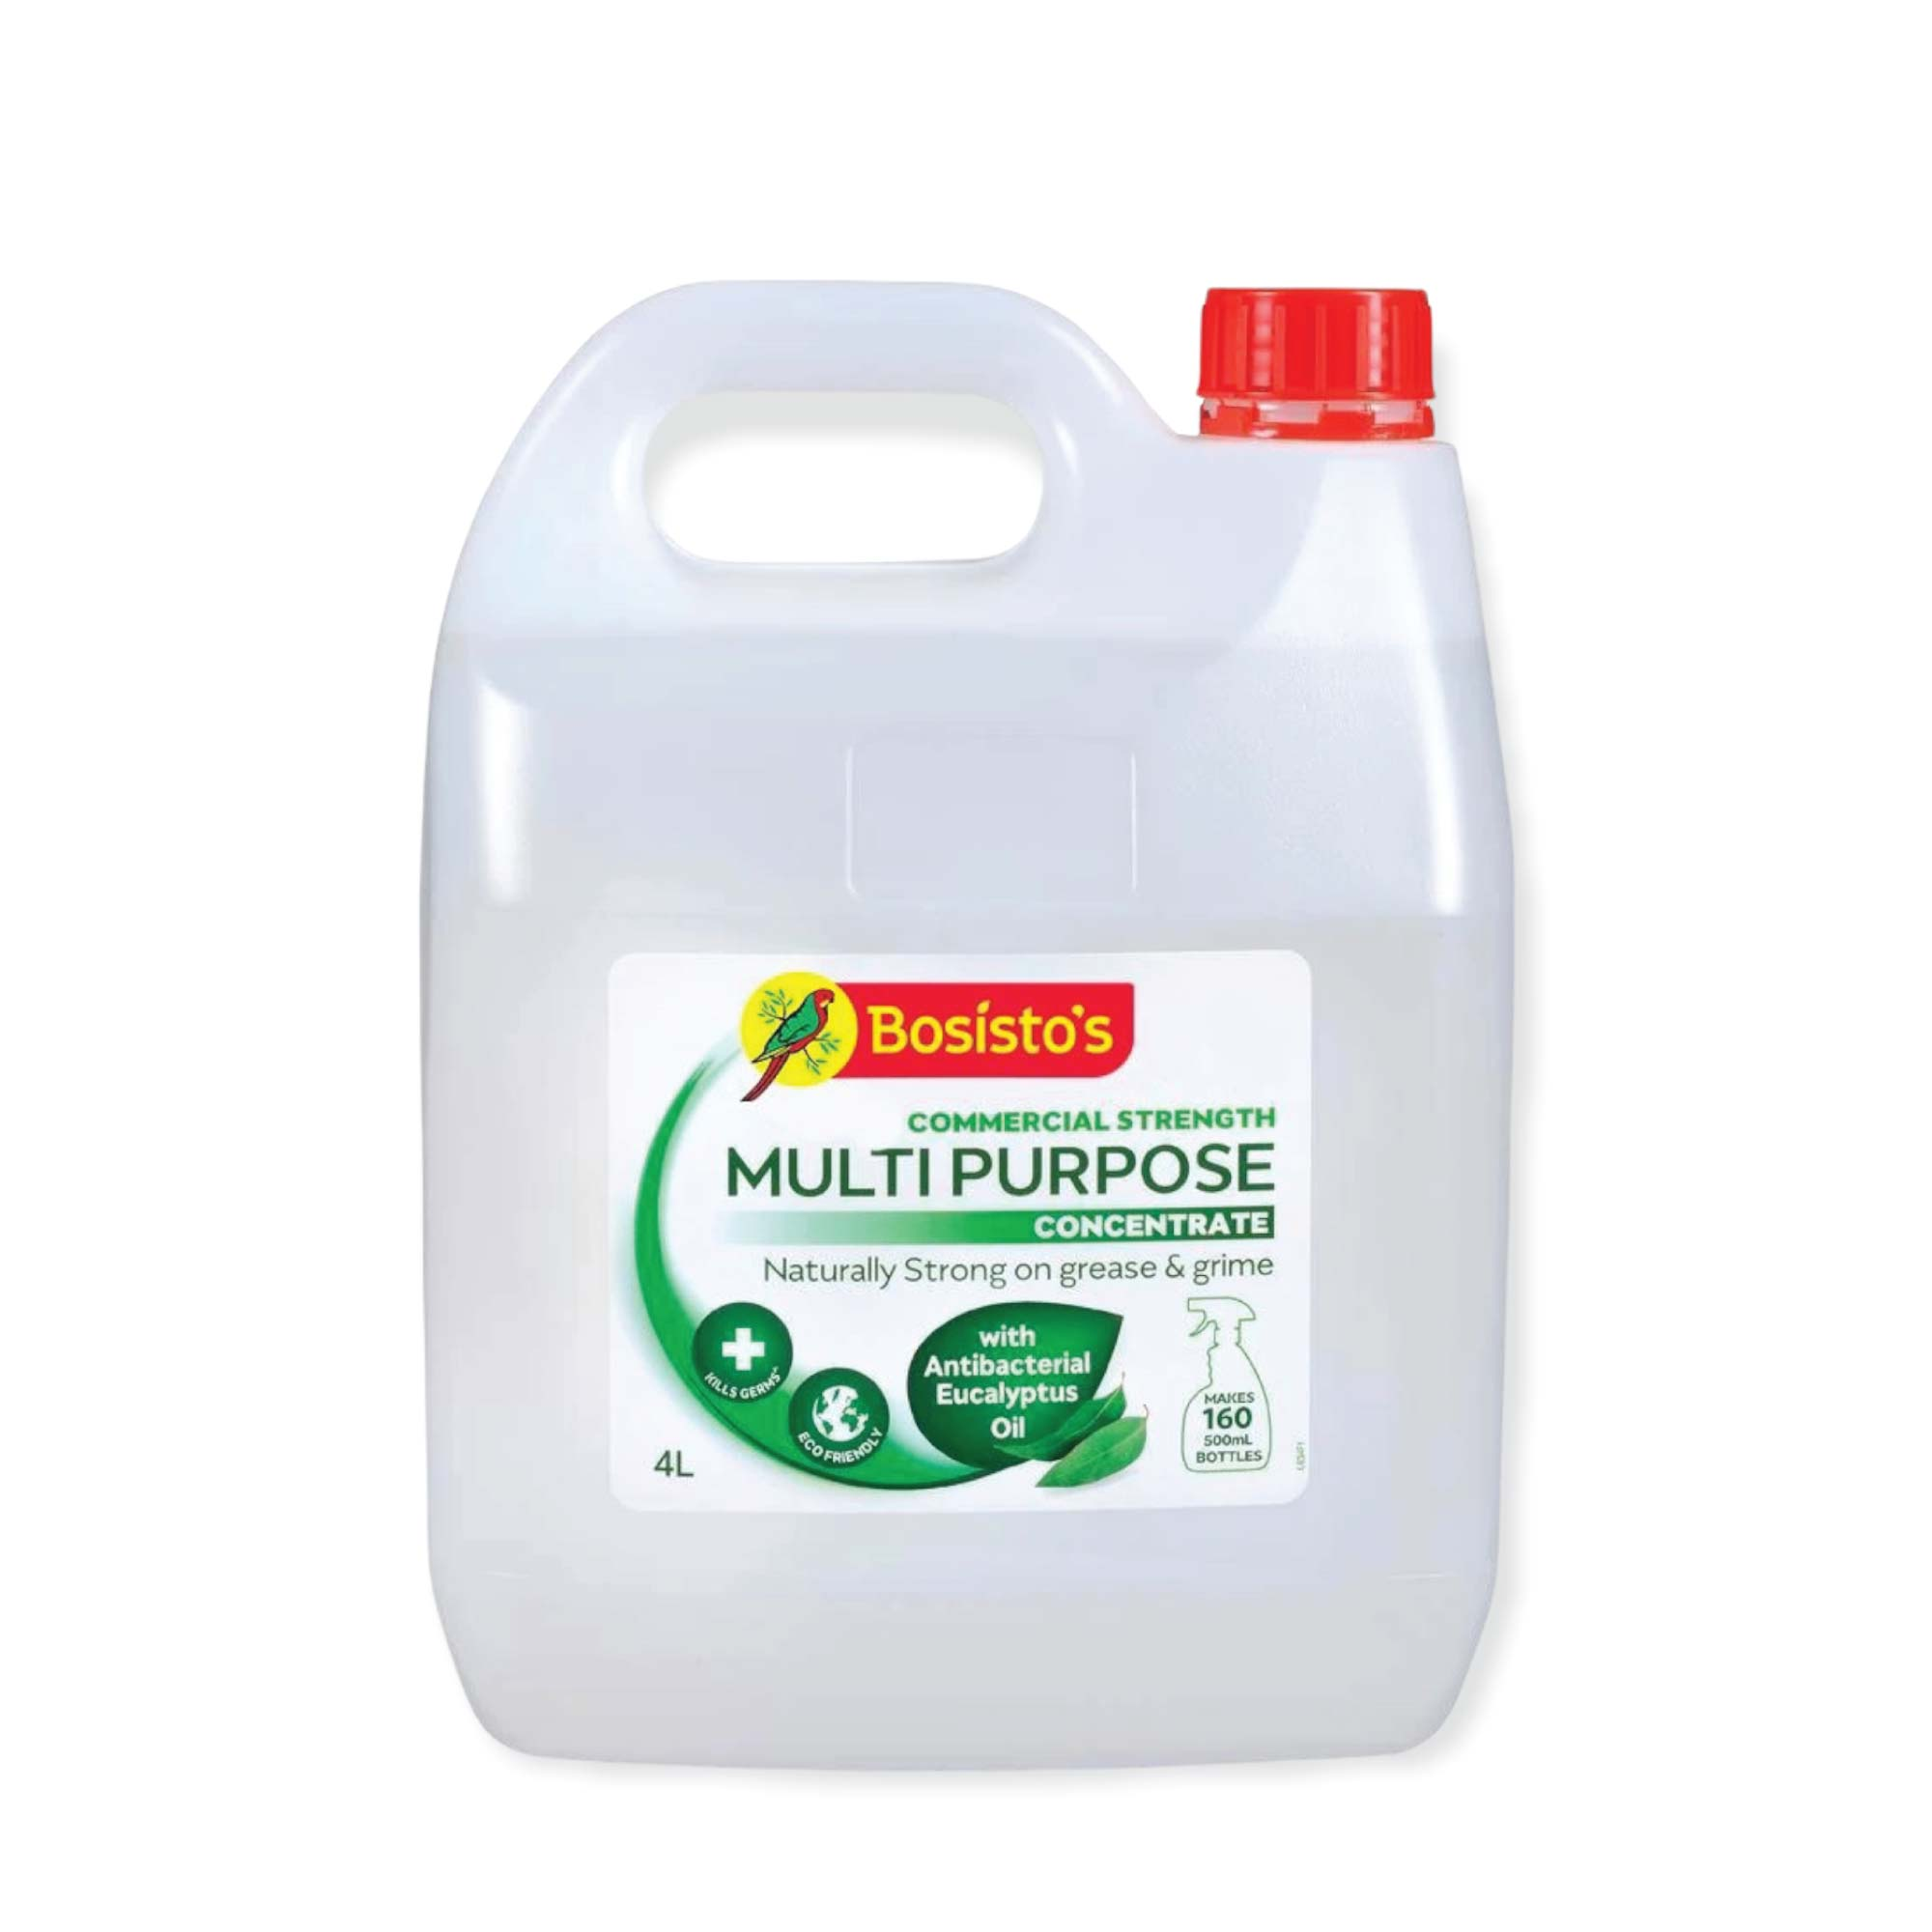 4L Multipurpose Cleaner Bosisto's Commercial Strength Concentrate Eucalyptus Oil